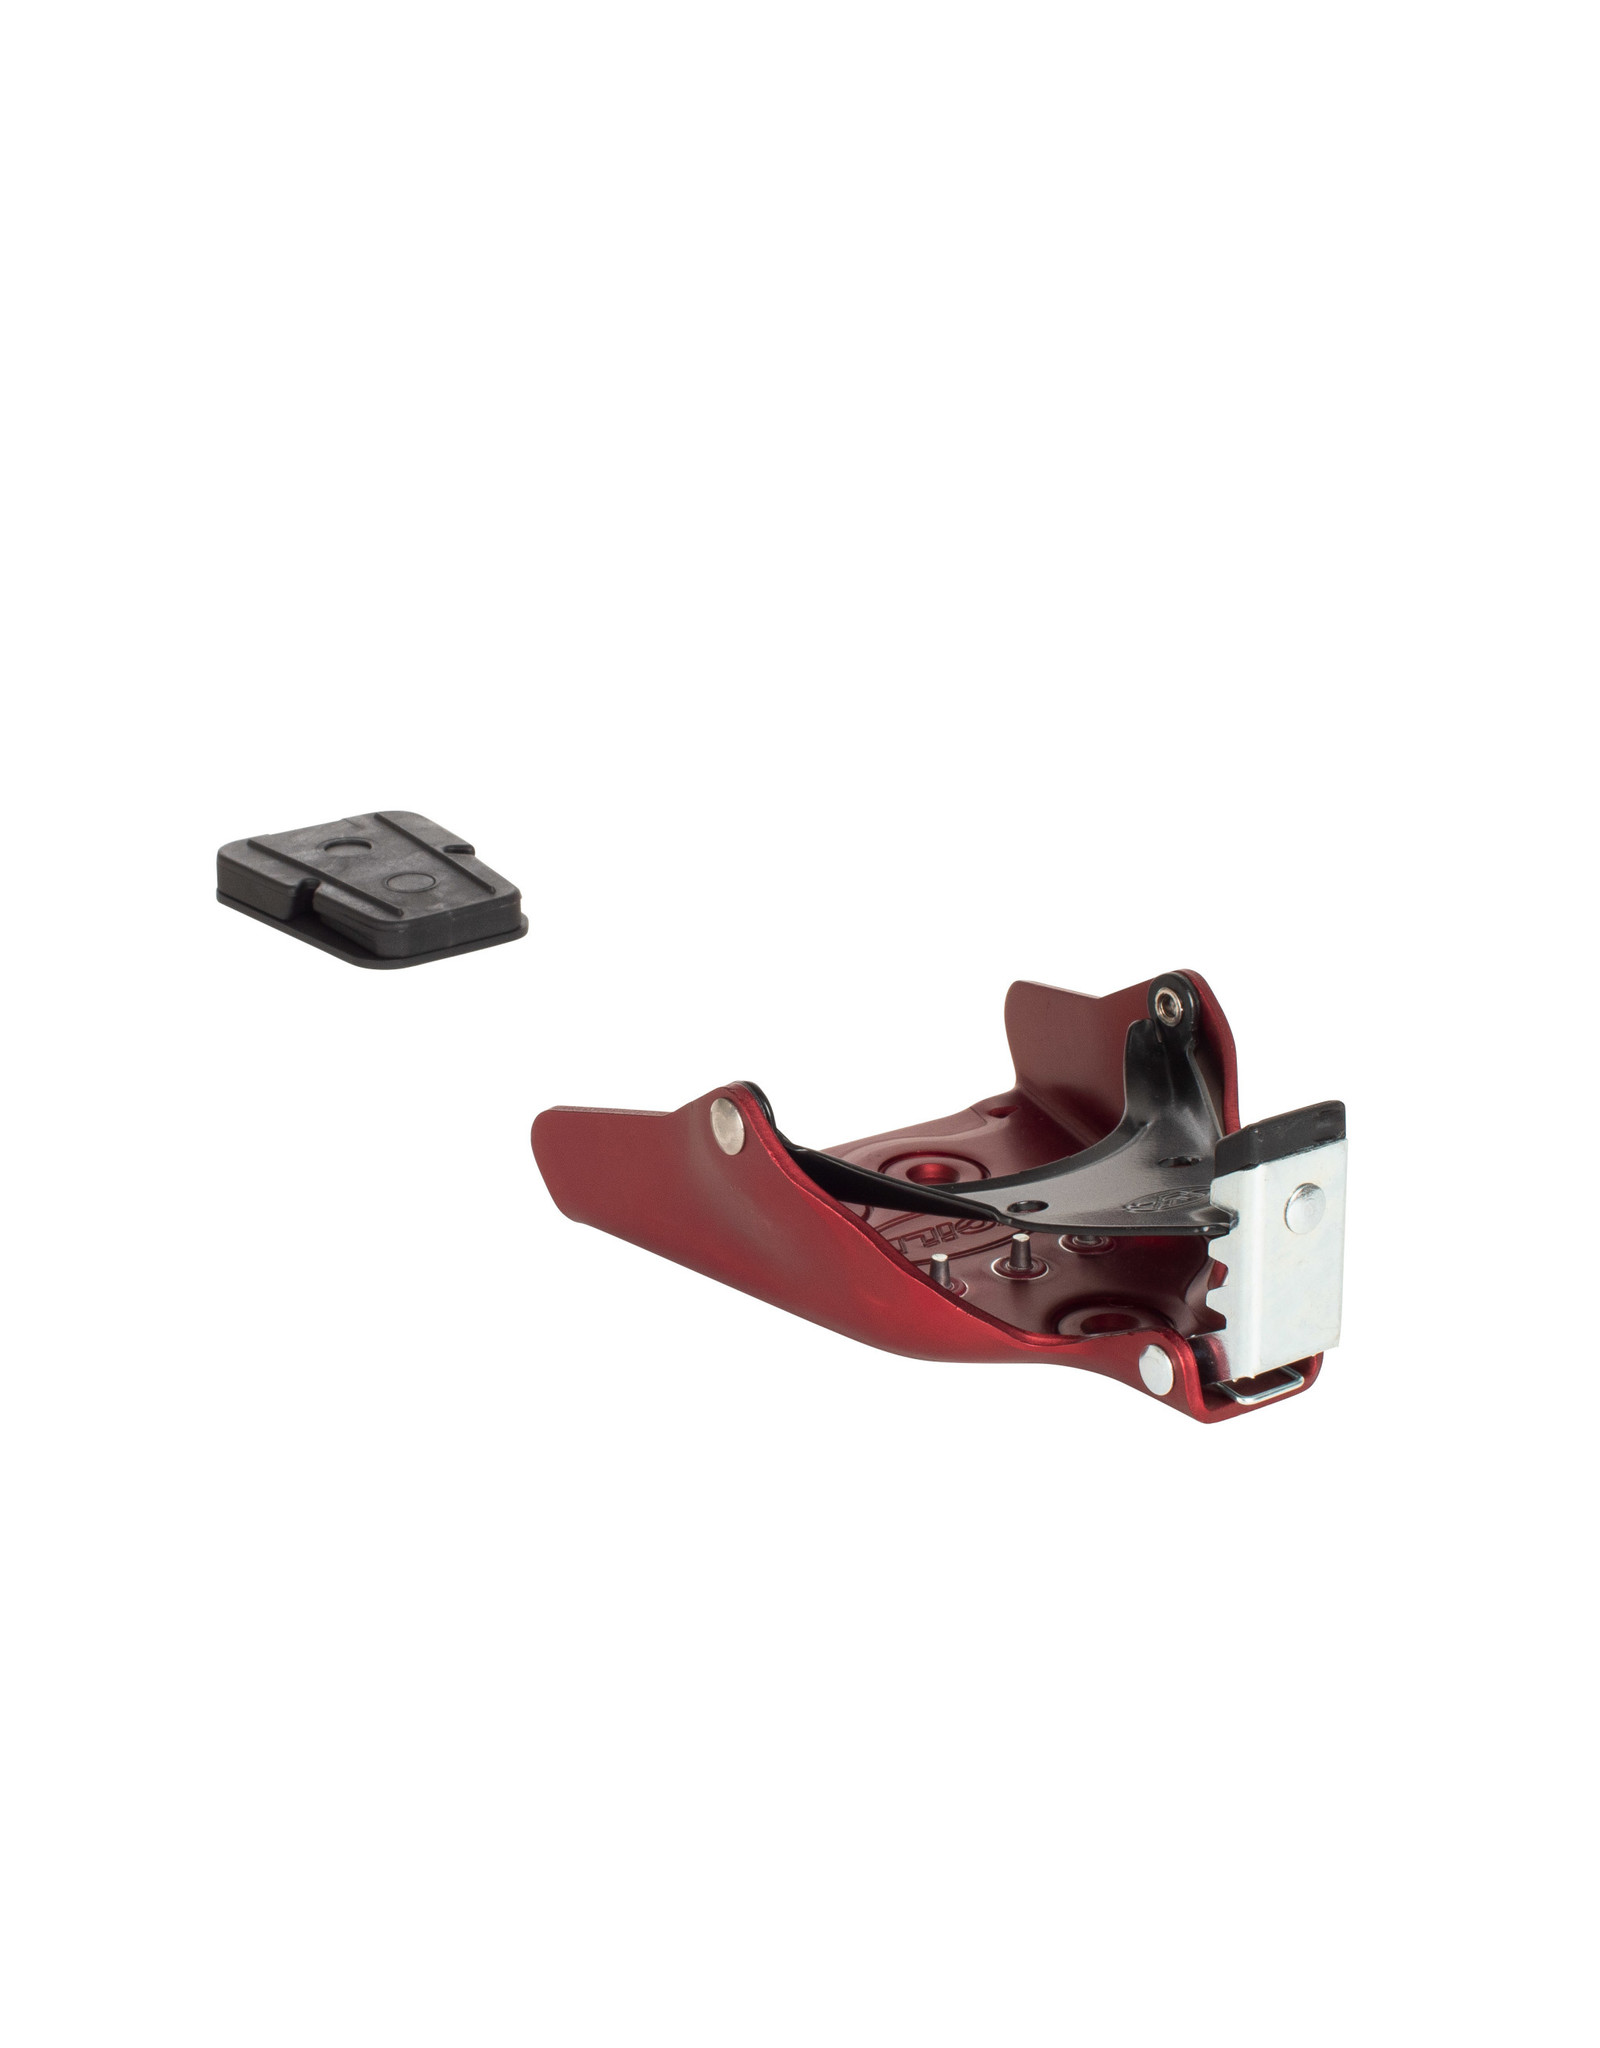 Voile Voile 2020 HD Mountaineer 3-pin Tele Bindings